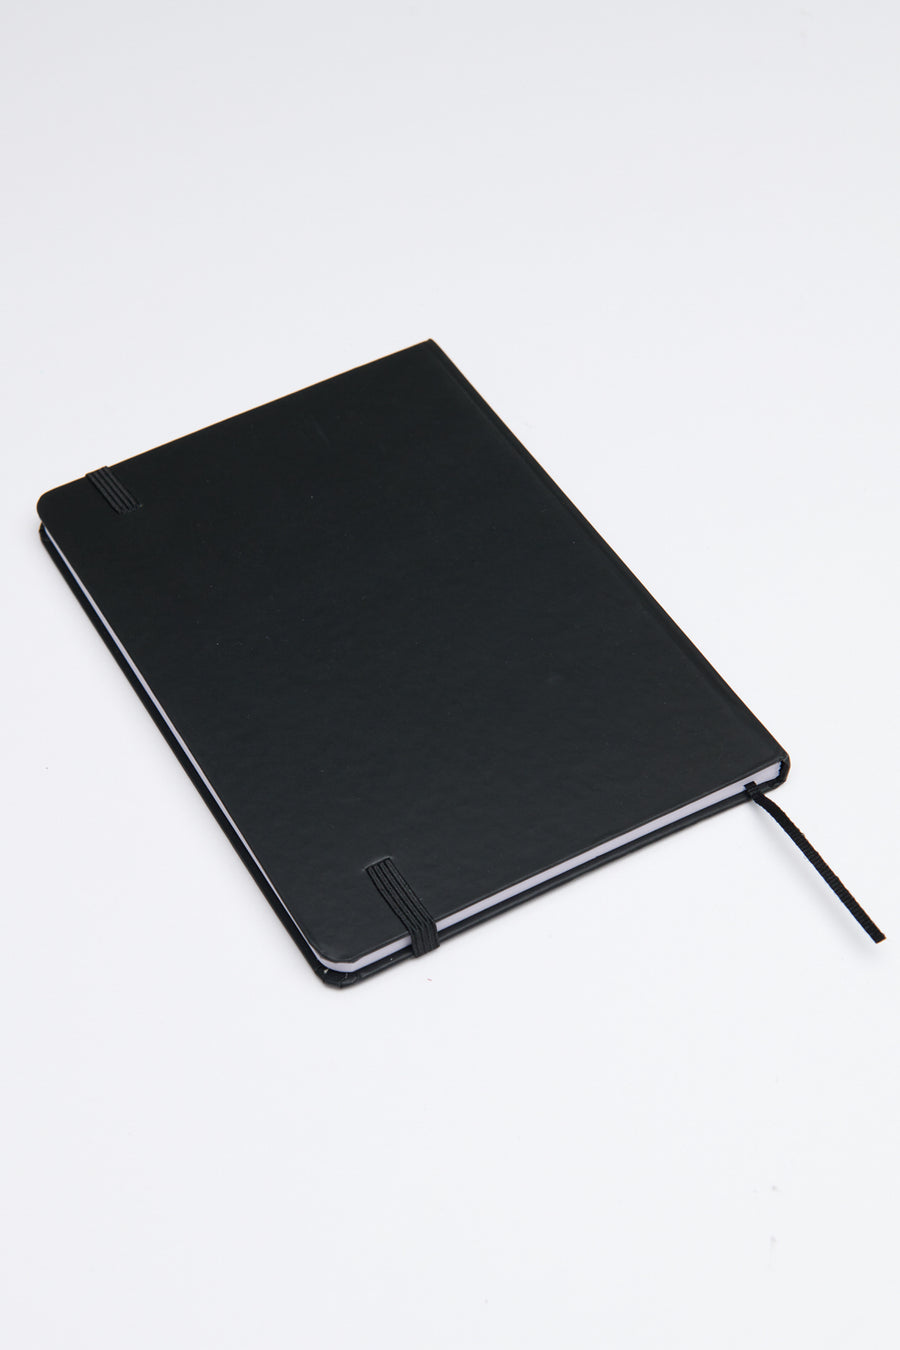 Rebirth - Notepad (Black)